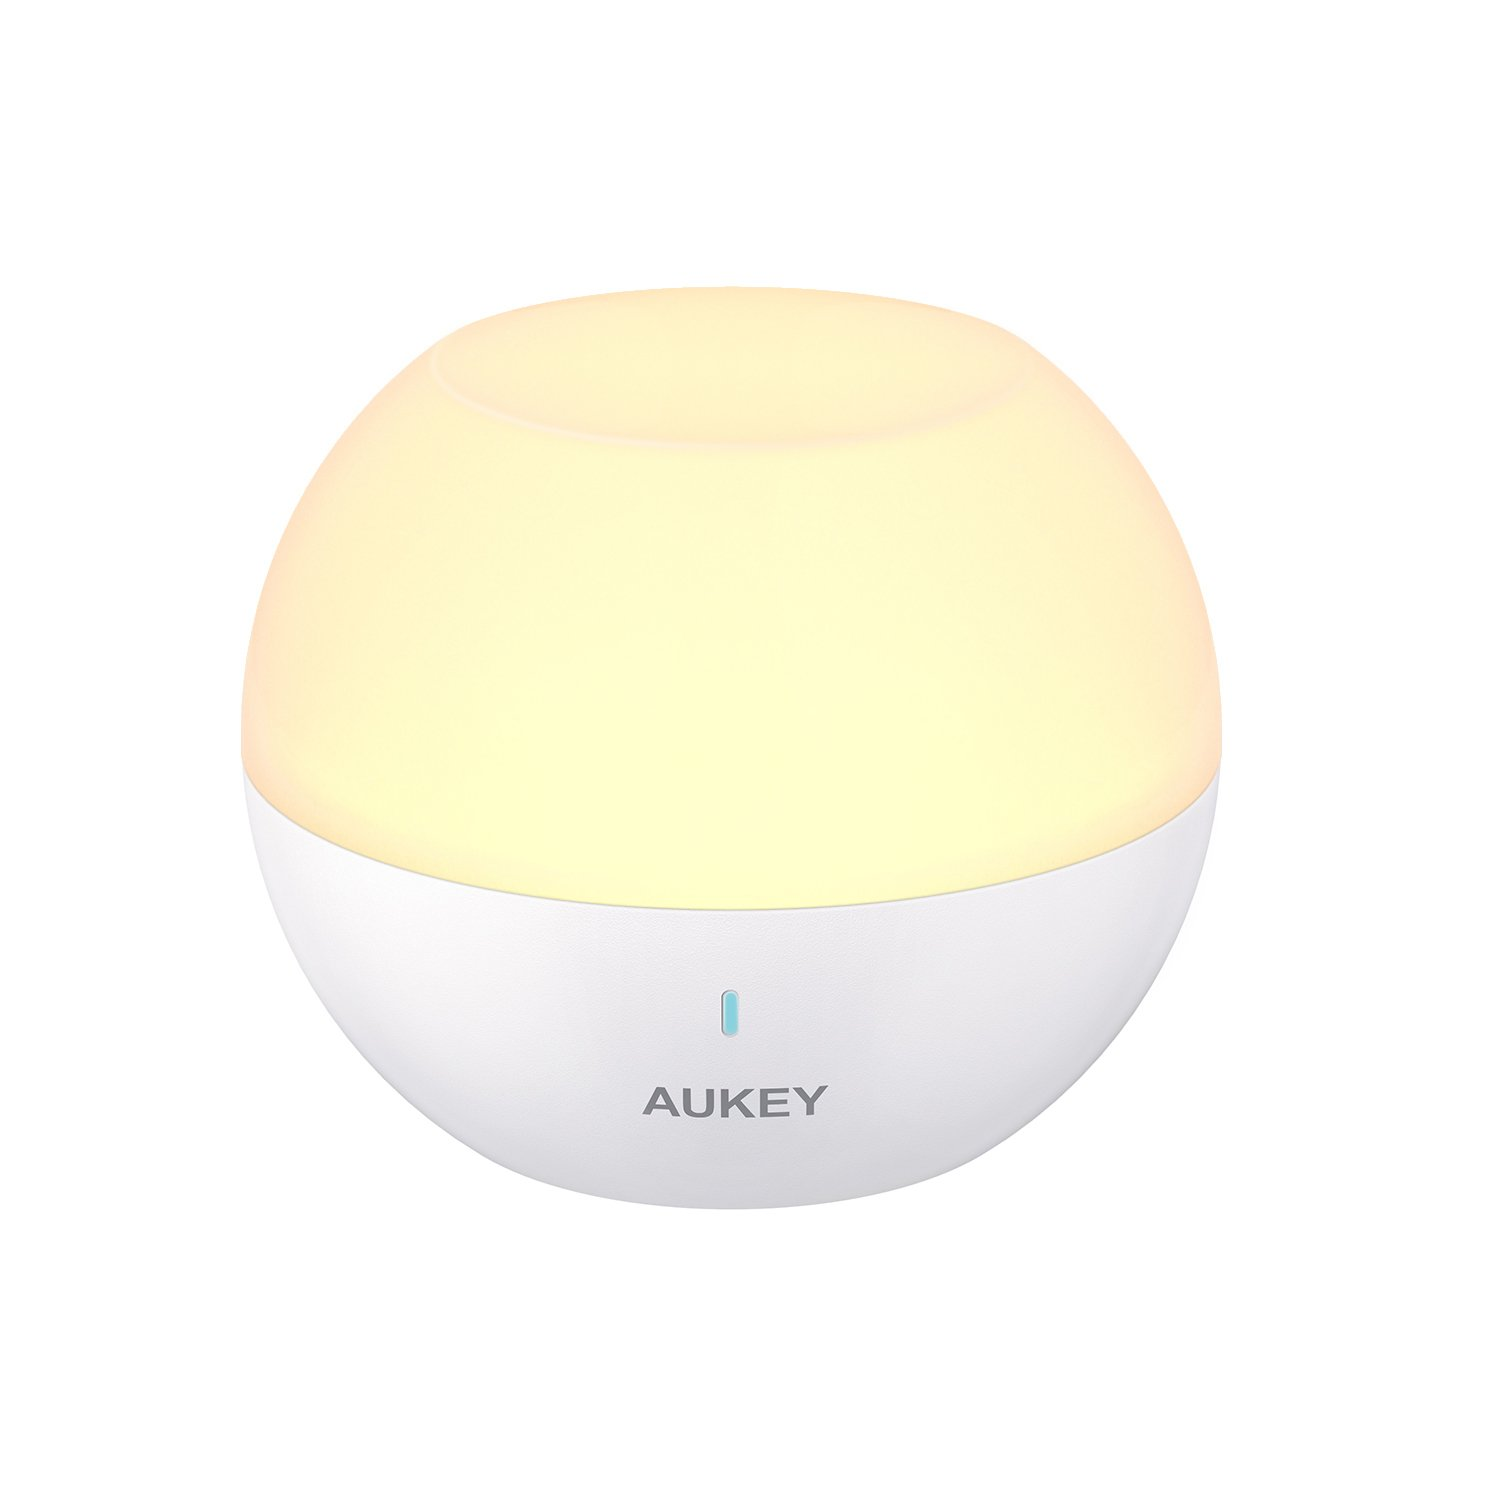 AUKEY Night Light, Rechargeable Bedside Lamp with RGB Color-Changing & Dimmable White Light, IP65 Water-Resistance & Drop-Resistance, Touch Control Table Lamp for Reading, Sleeping, and Relaxing